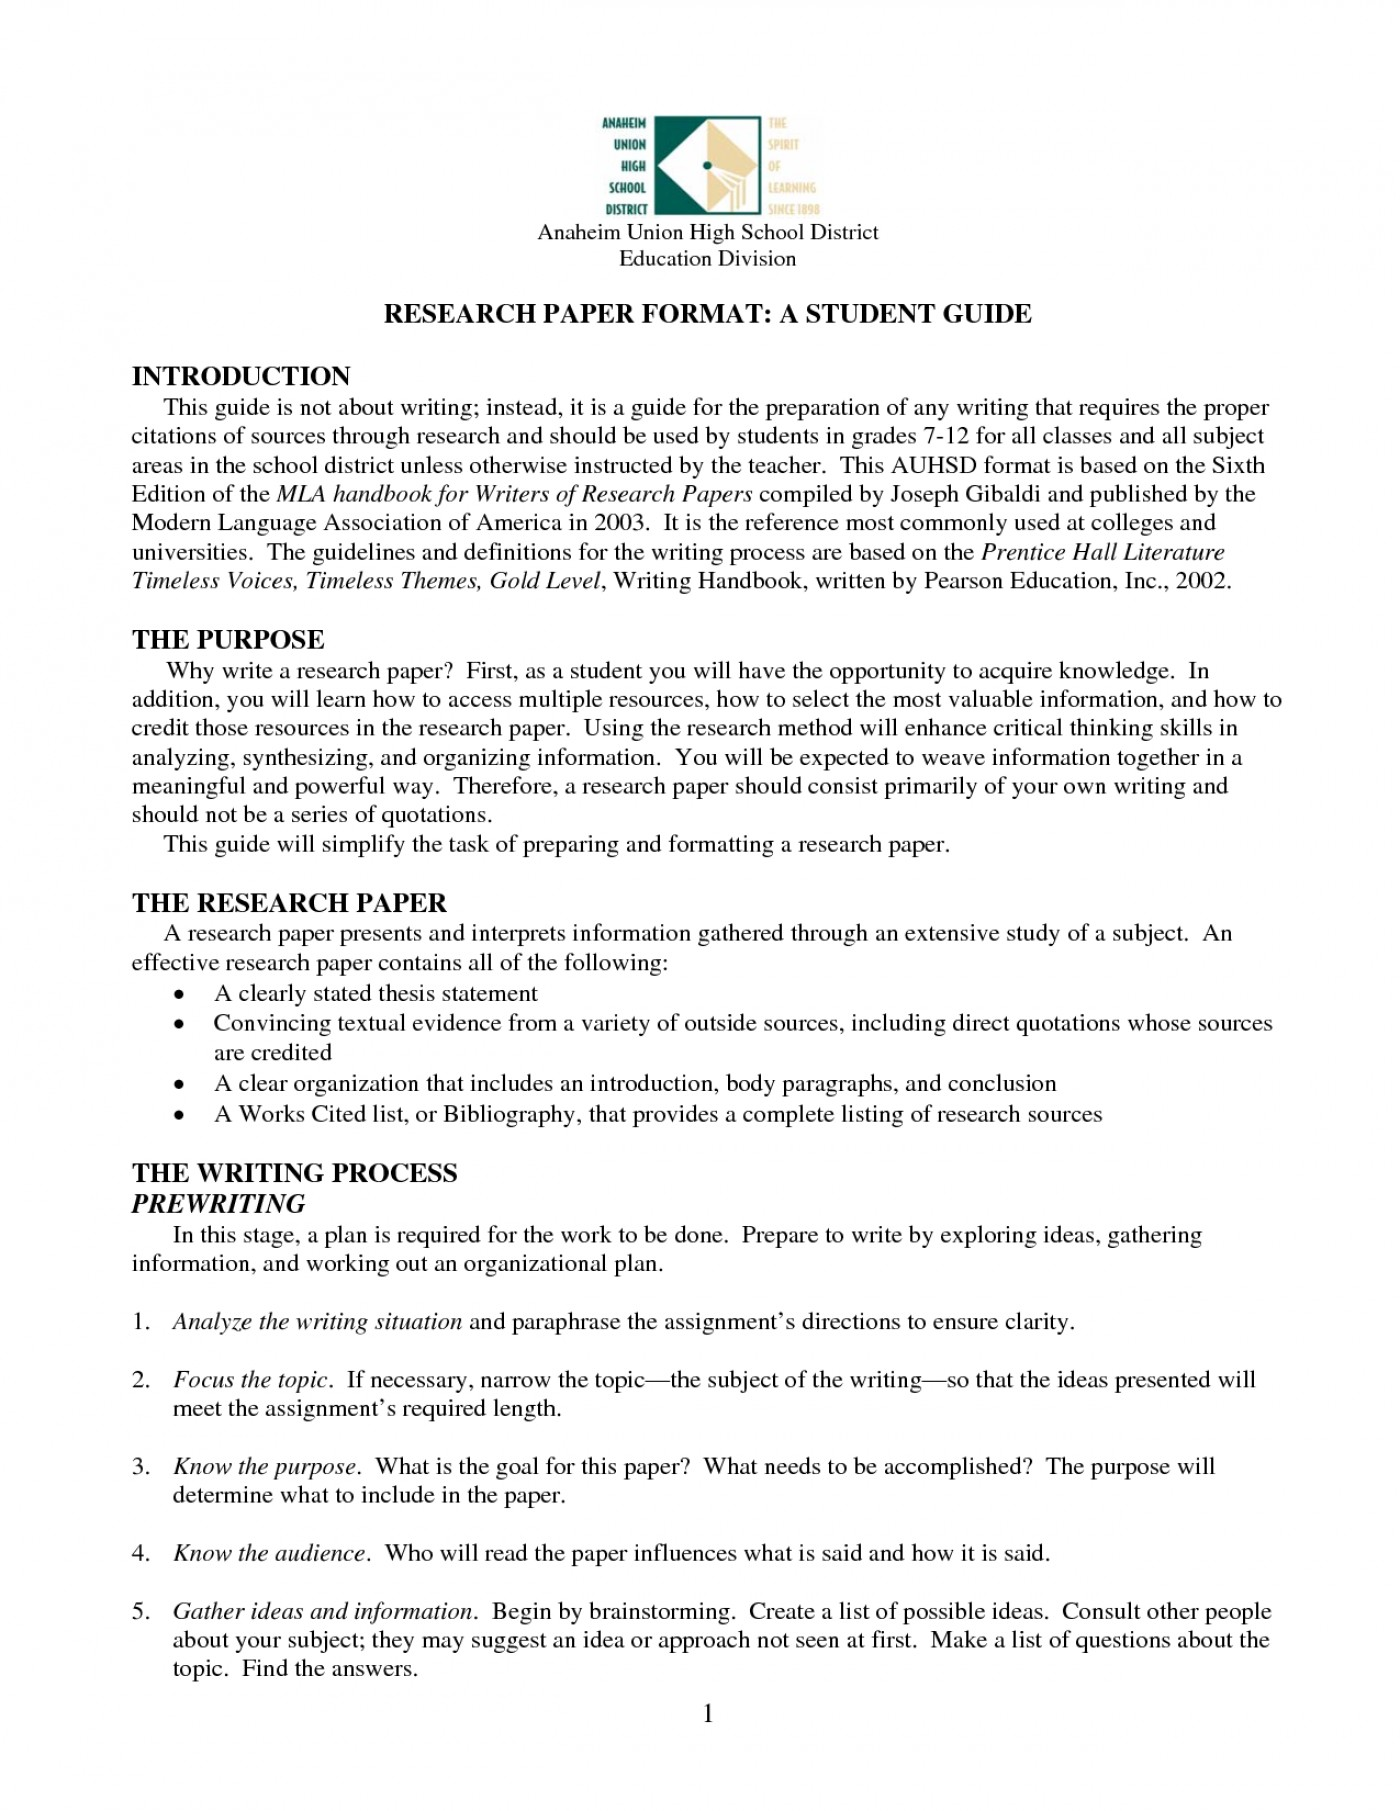 021 Research Paper Proposal Topic Astounding Ideas Education Psychology Business 1400